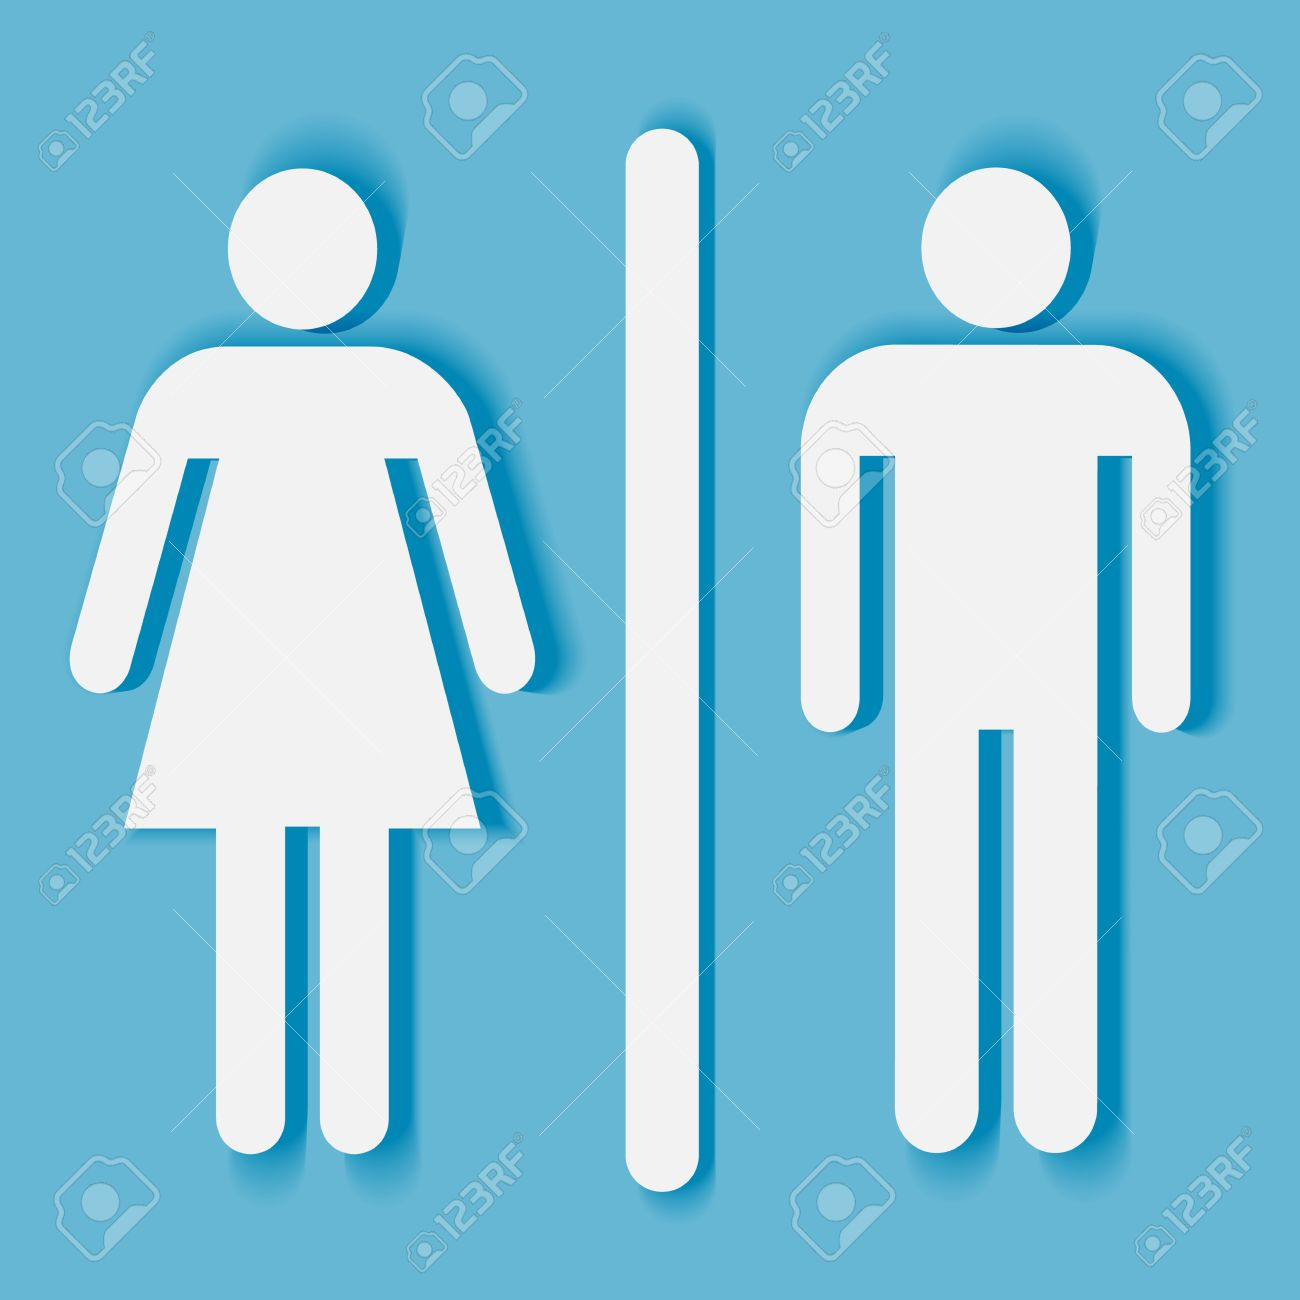 Bathroom Or Toilet Sign And Symbol: Man And Woman Silhouette With Shadow  Stock Vector